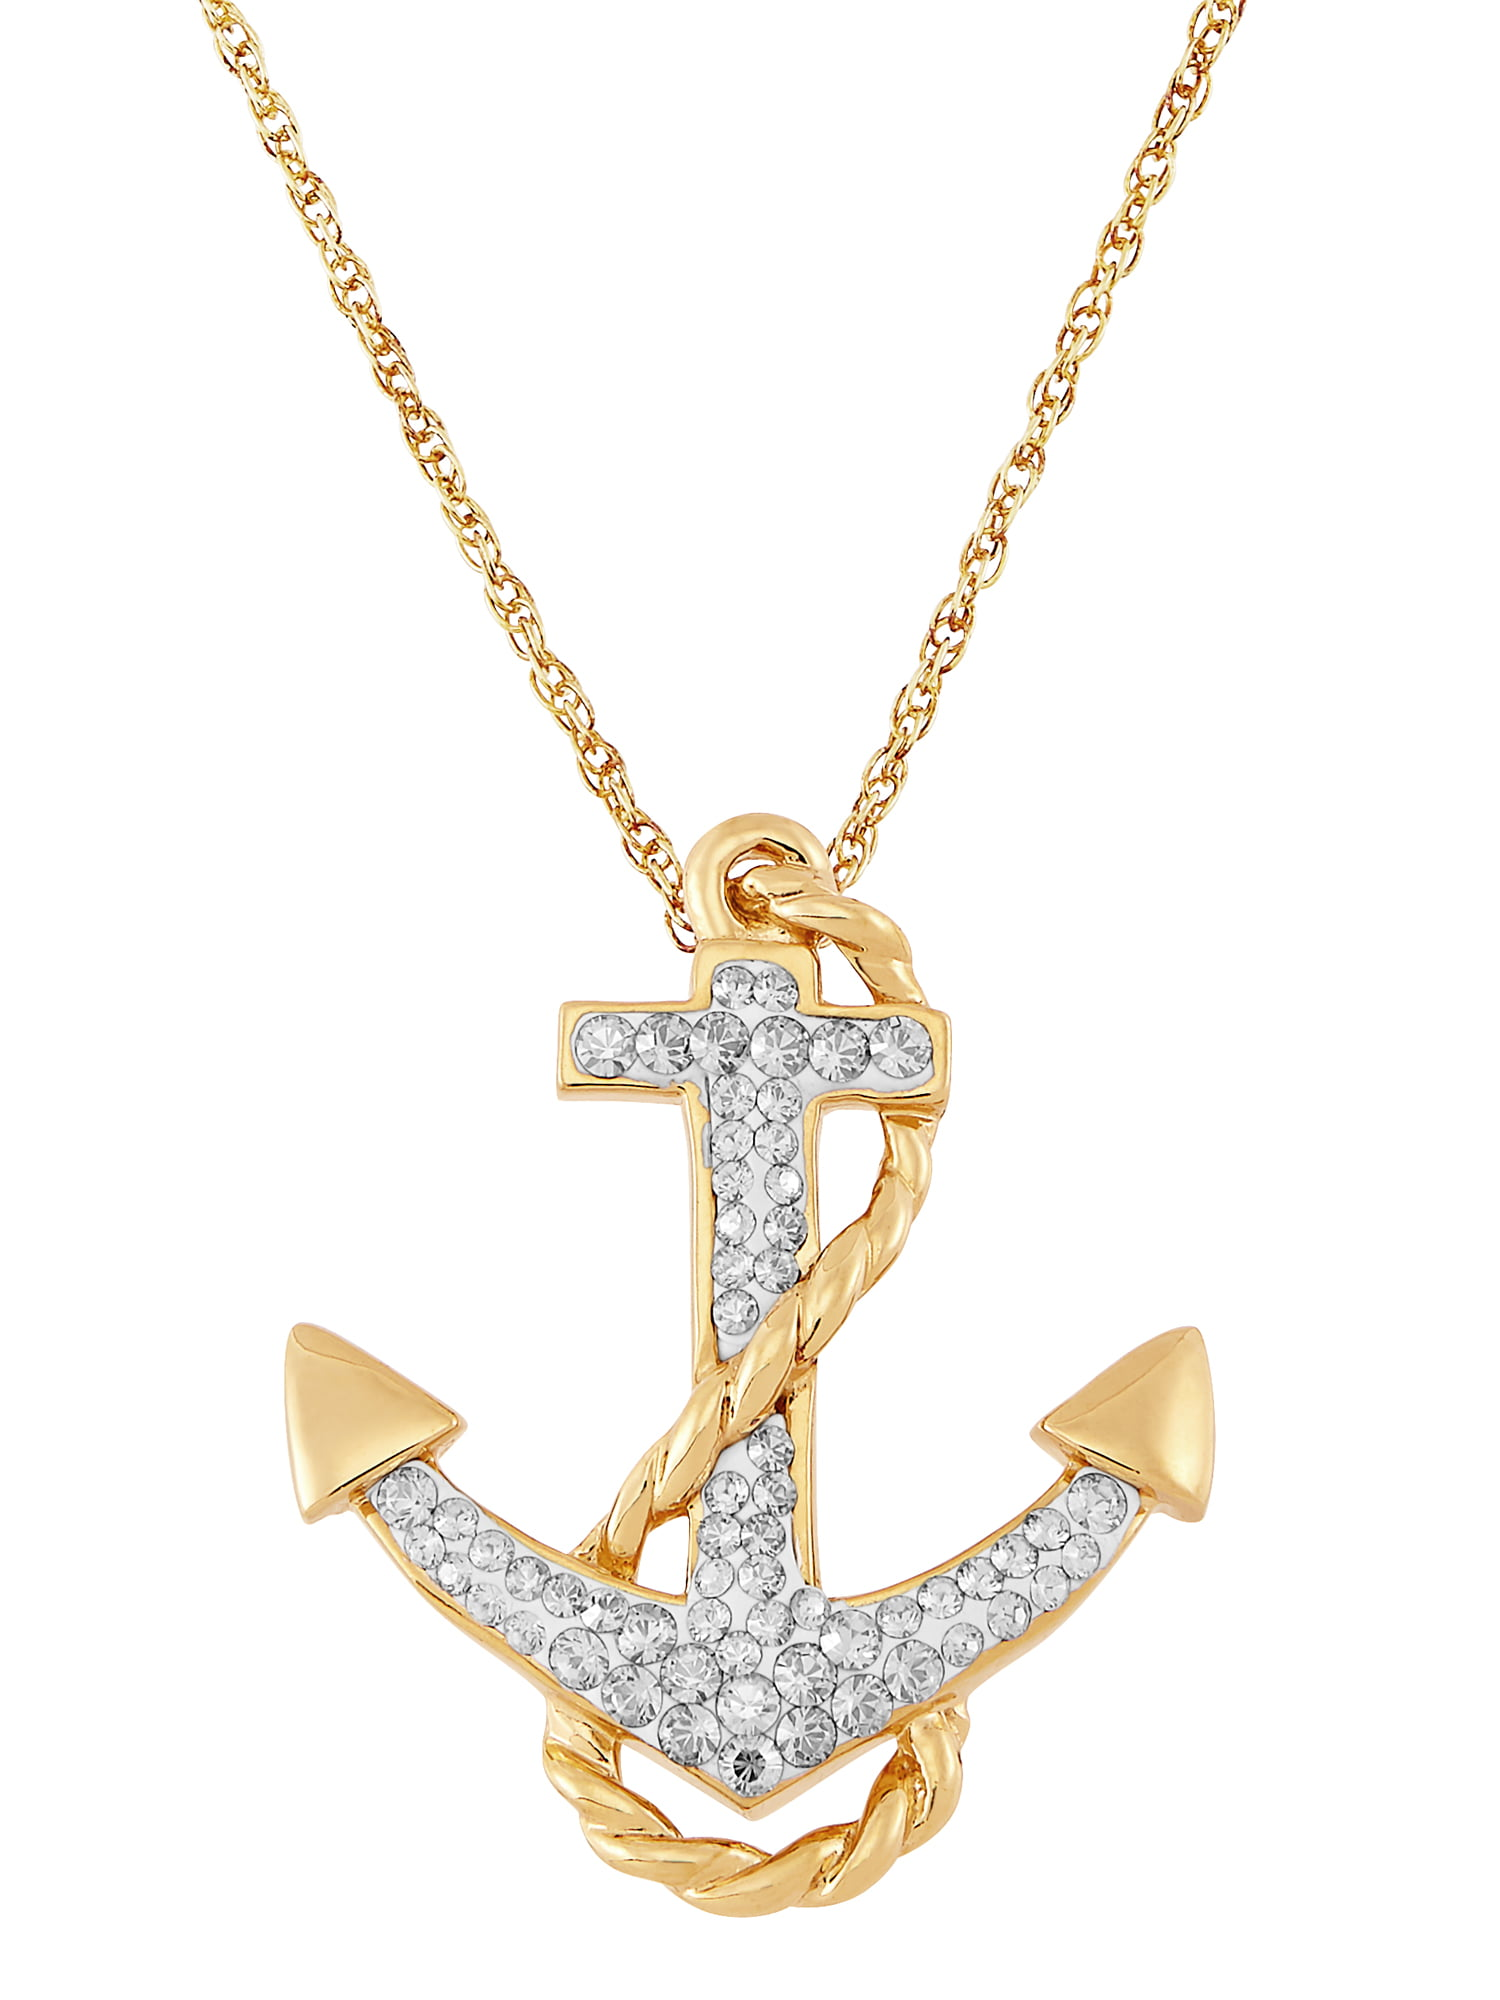 24+ Walmart protection plan for jewelry ideas in 2021